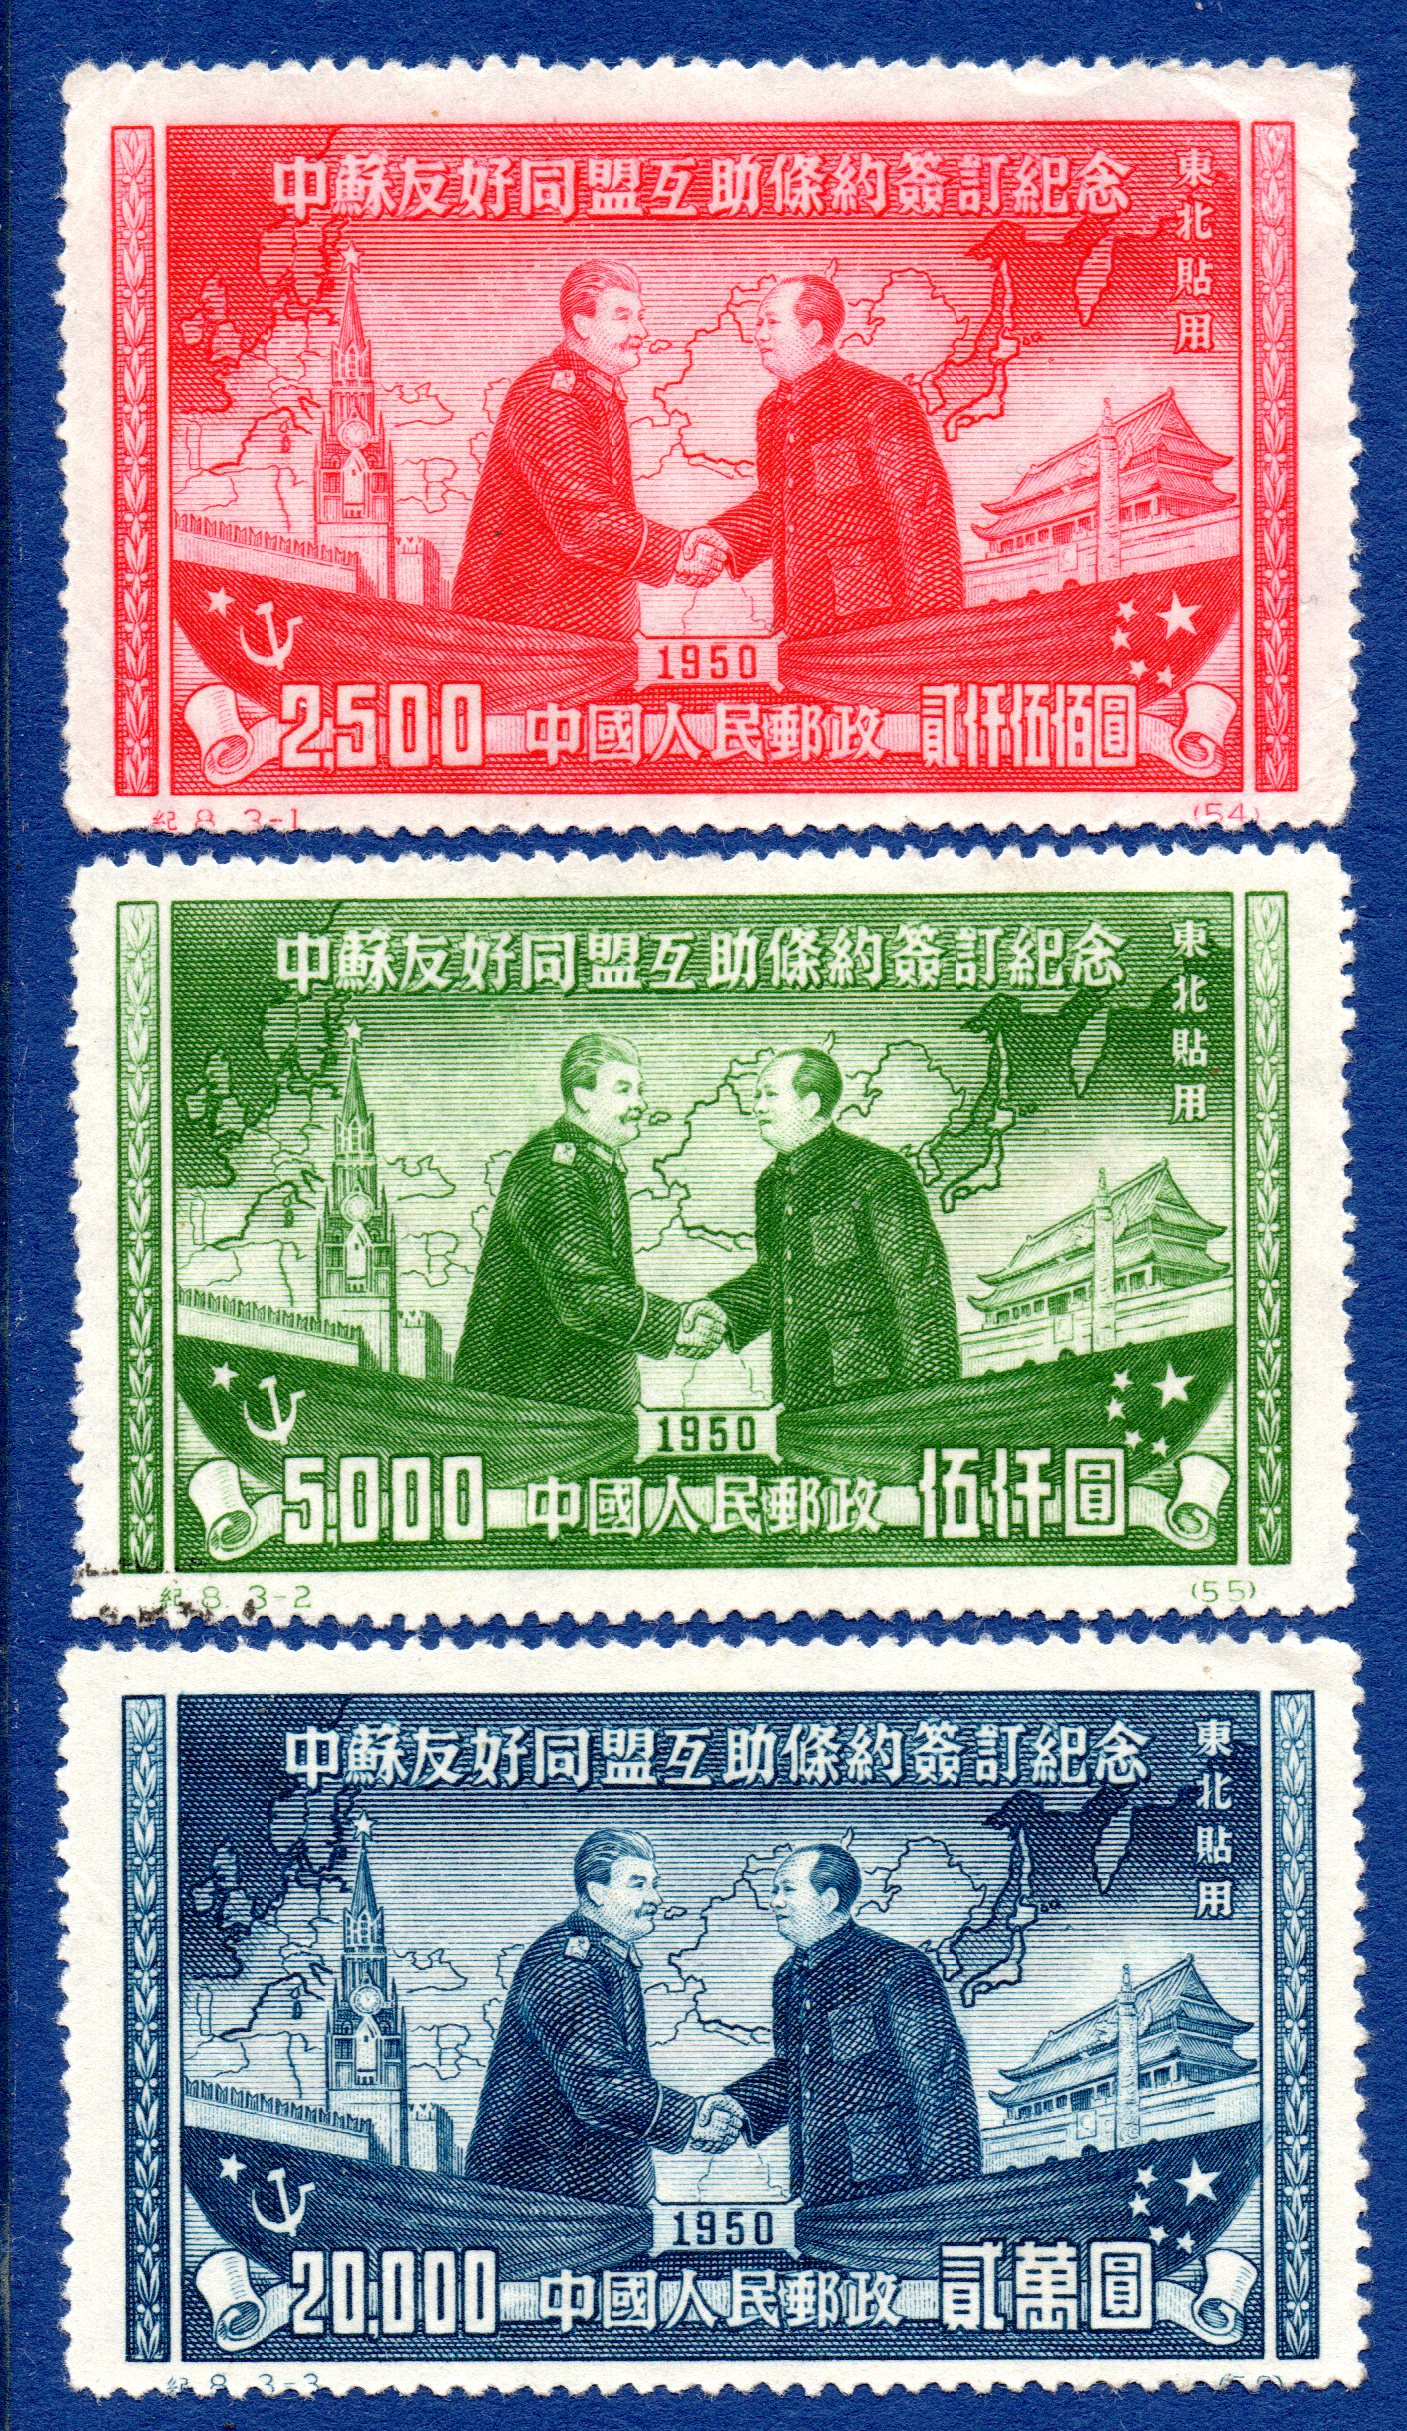 CHINA 1950 Sino-Soviet Treaty C8 For use in the North-east 1ST ISSUE